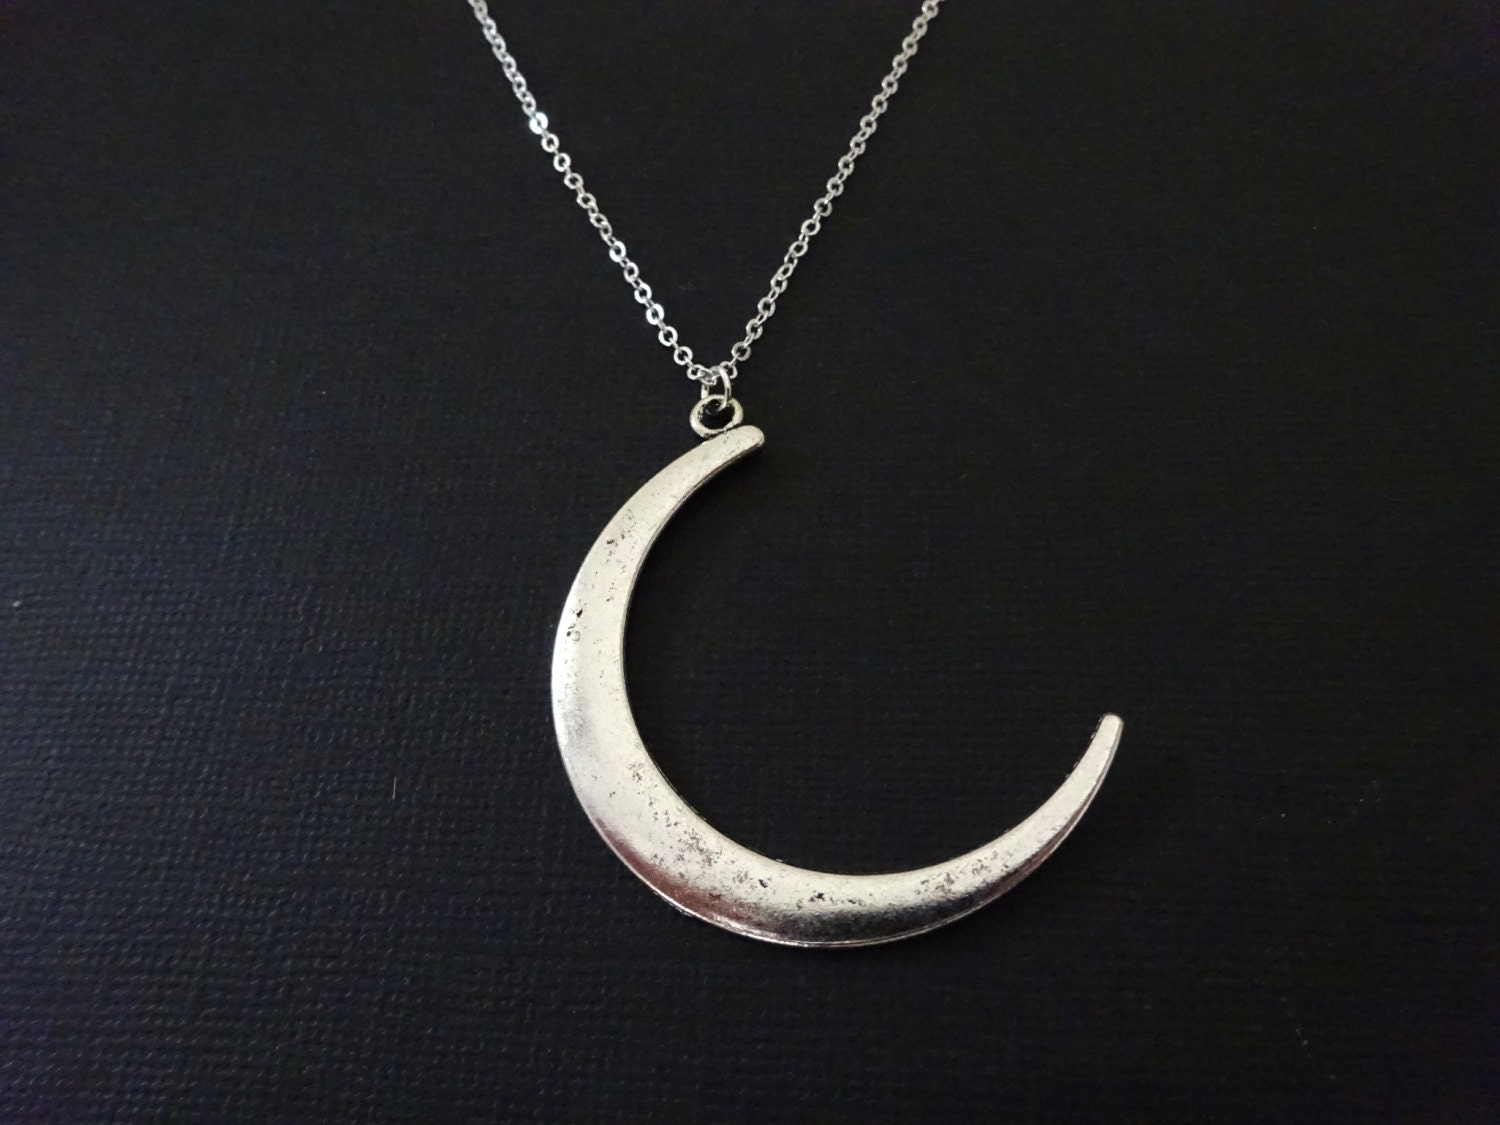 Large moon Necklace Crescent Moon Pendant Long Pendant